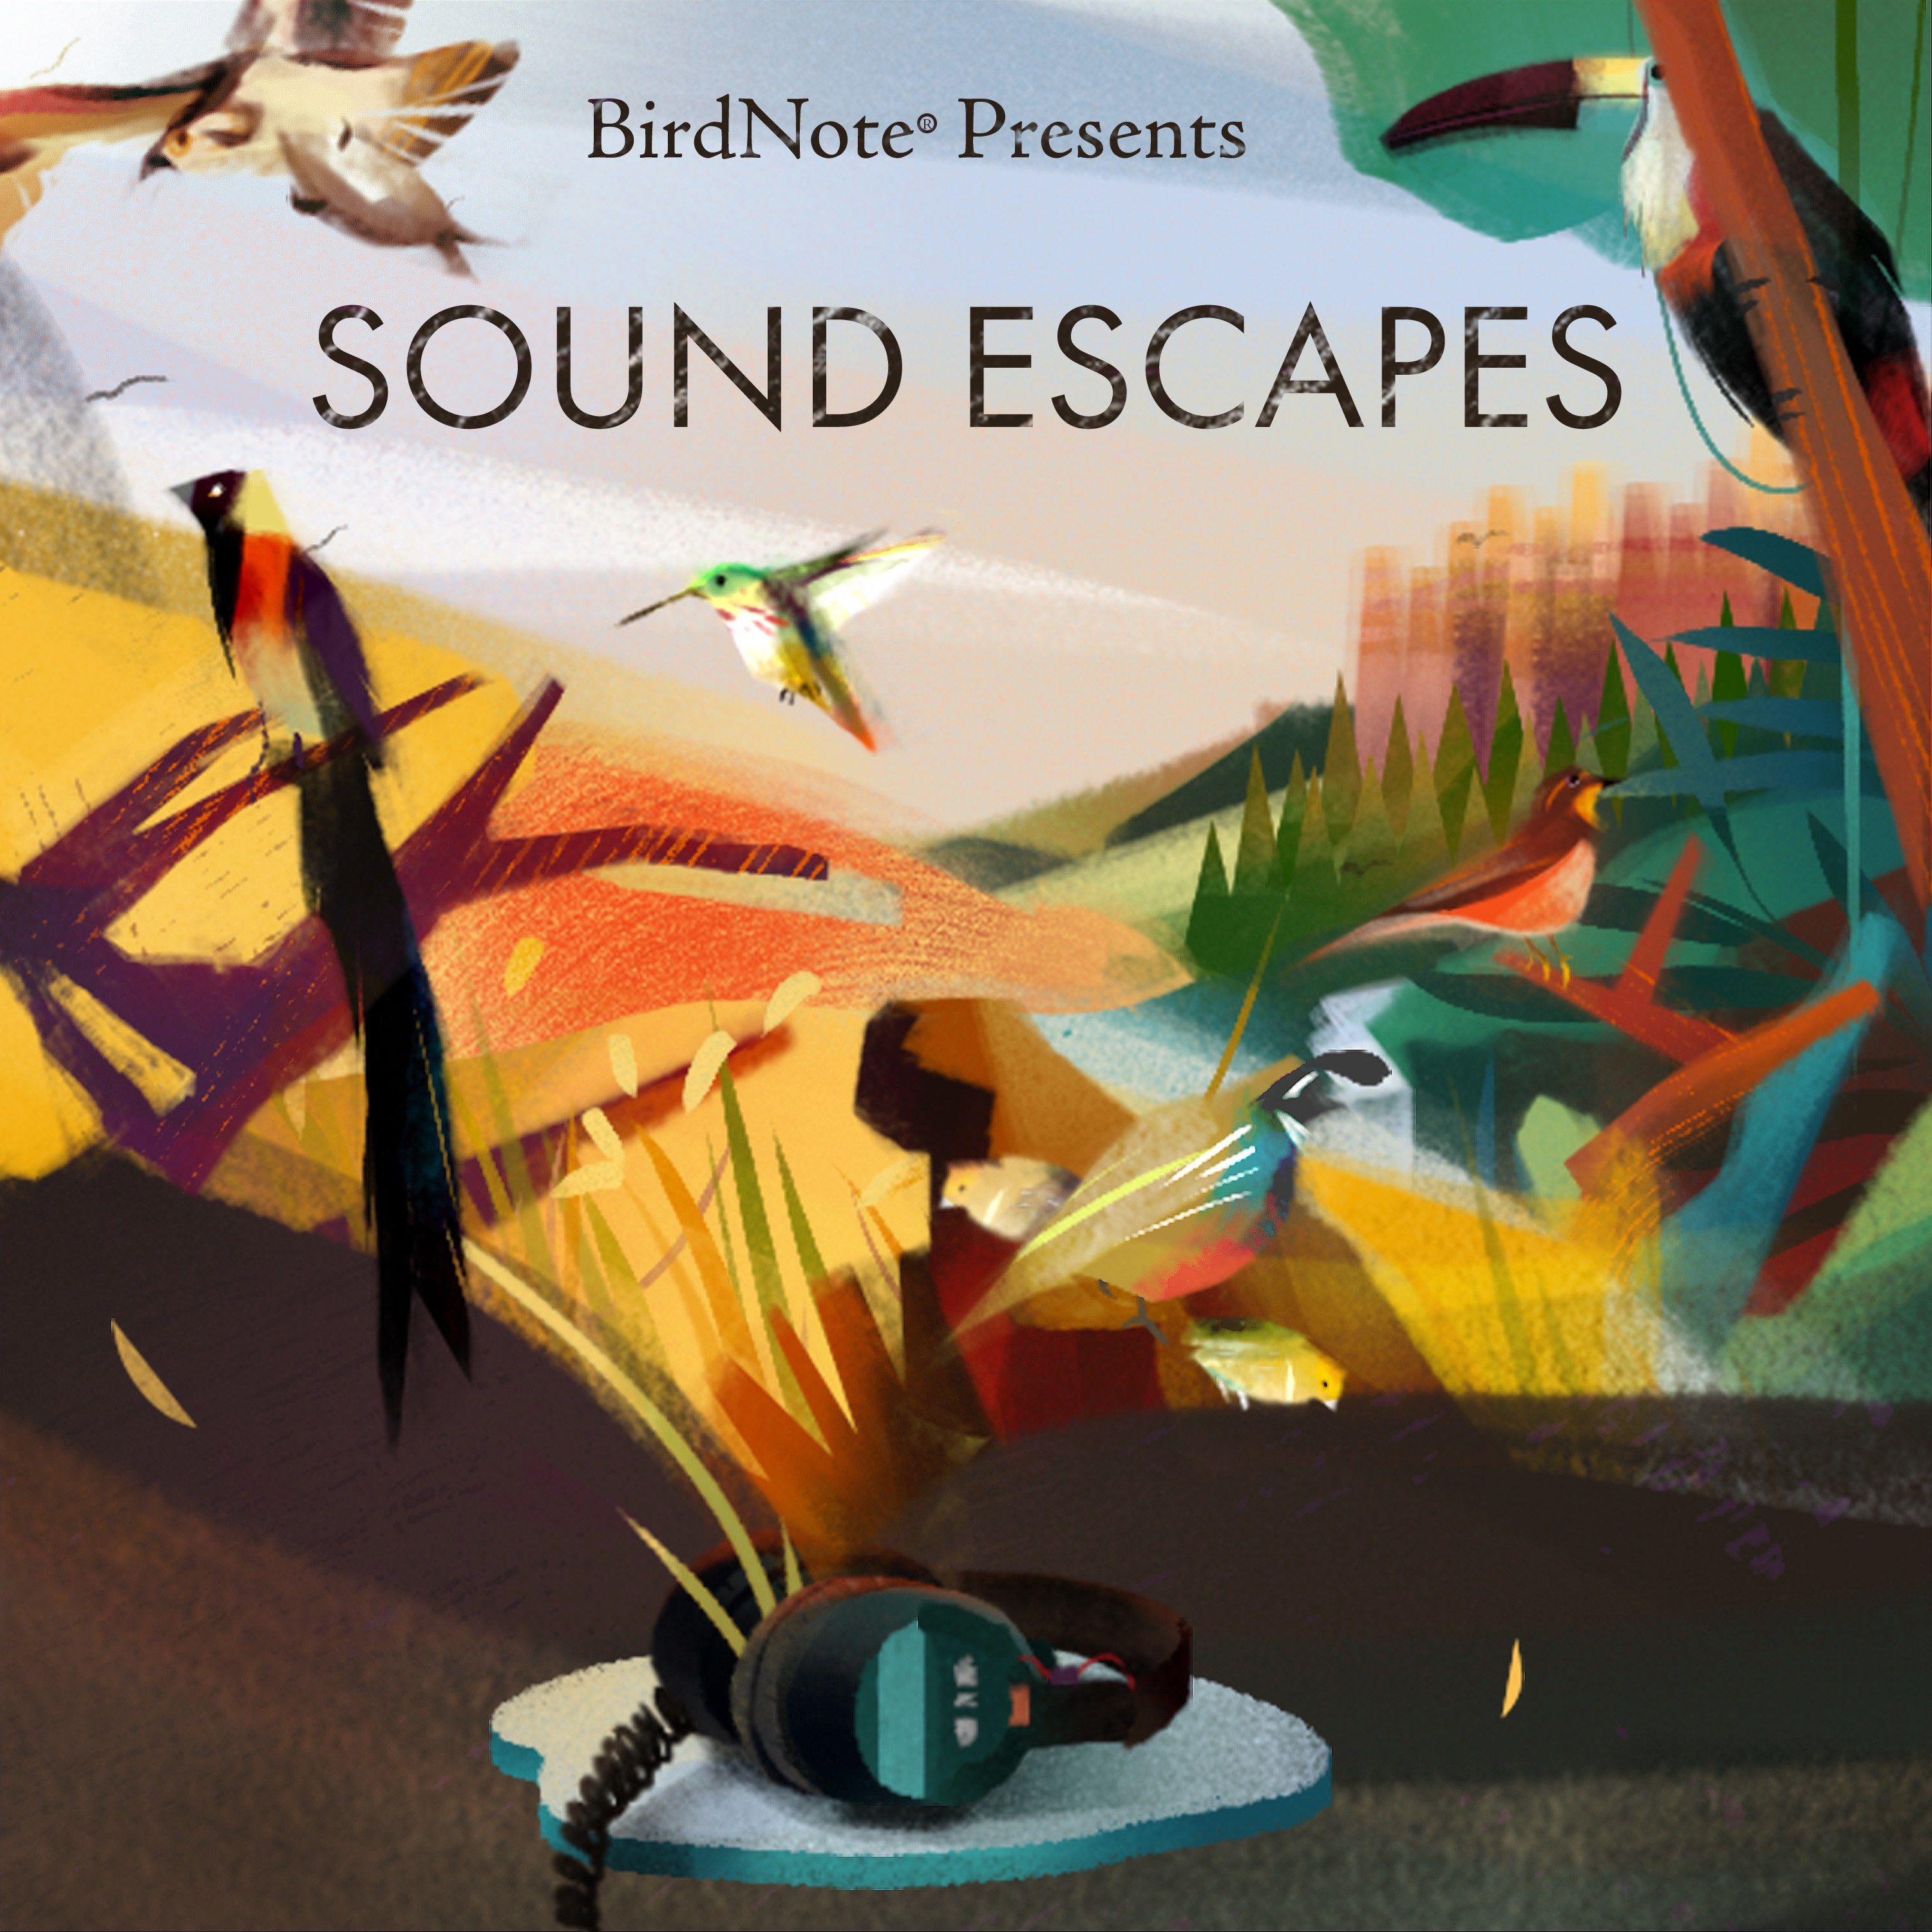 BirdNote Presents: Sound Escapes artwork with various landscapes emerging from a pair of headphones, each with many birds